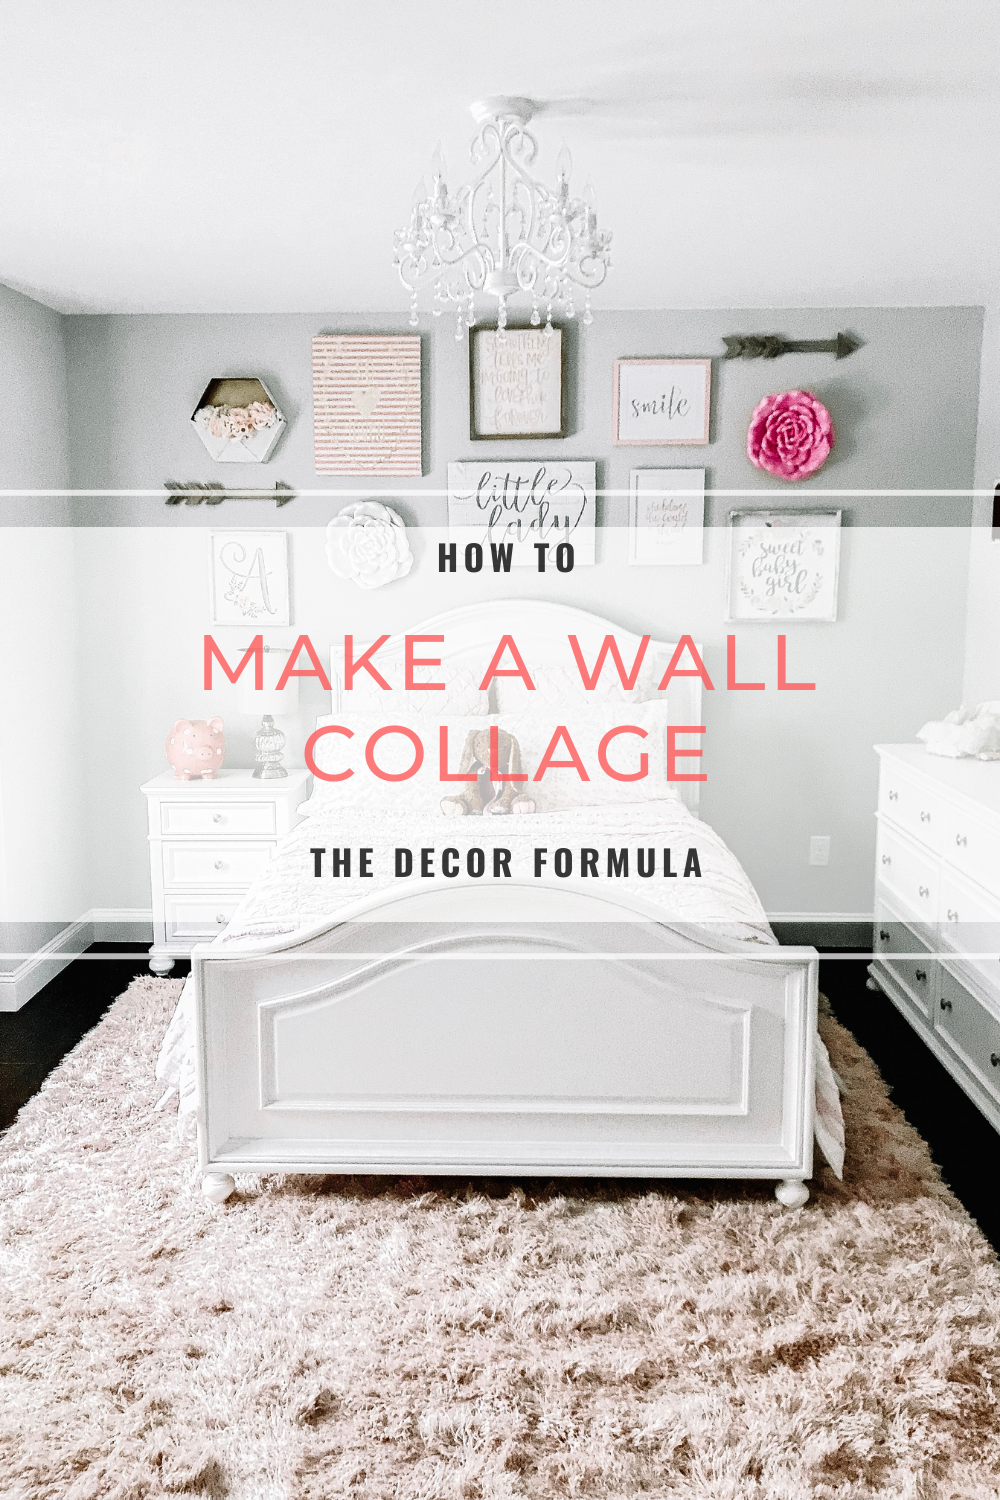 Charmant How To Make A Wall Collage: Tips For Tackling It With Ease